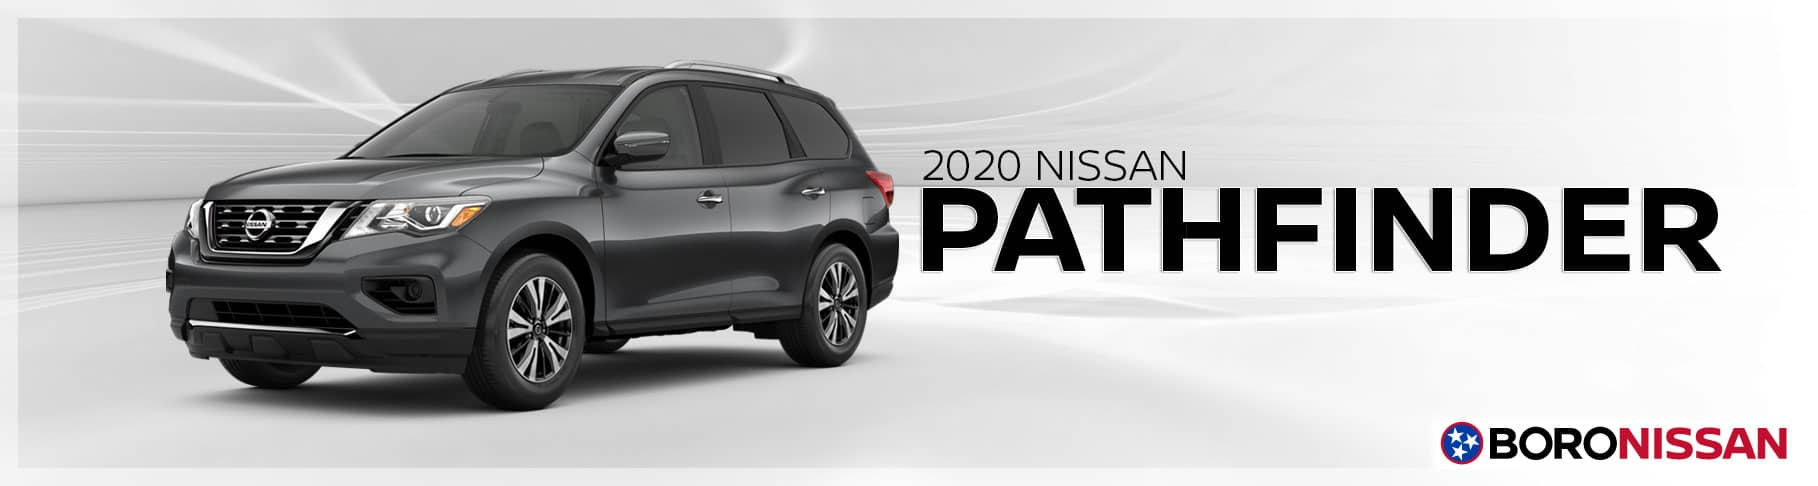 The 2020 Nissan Pathfinder